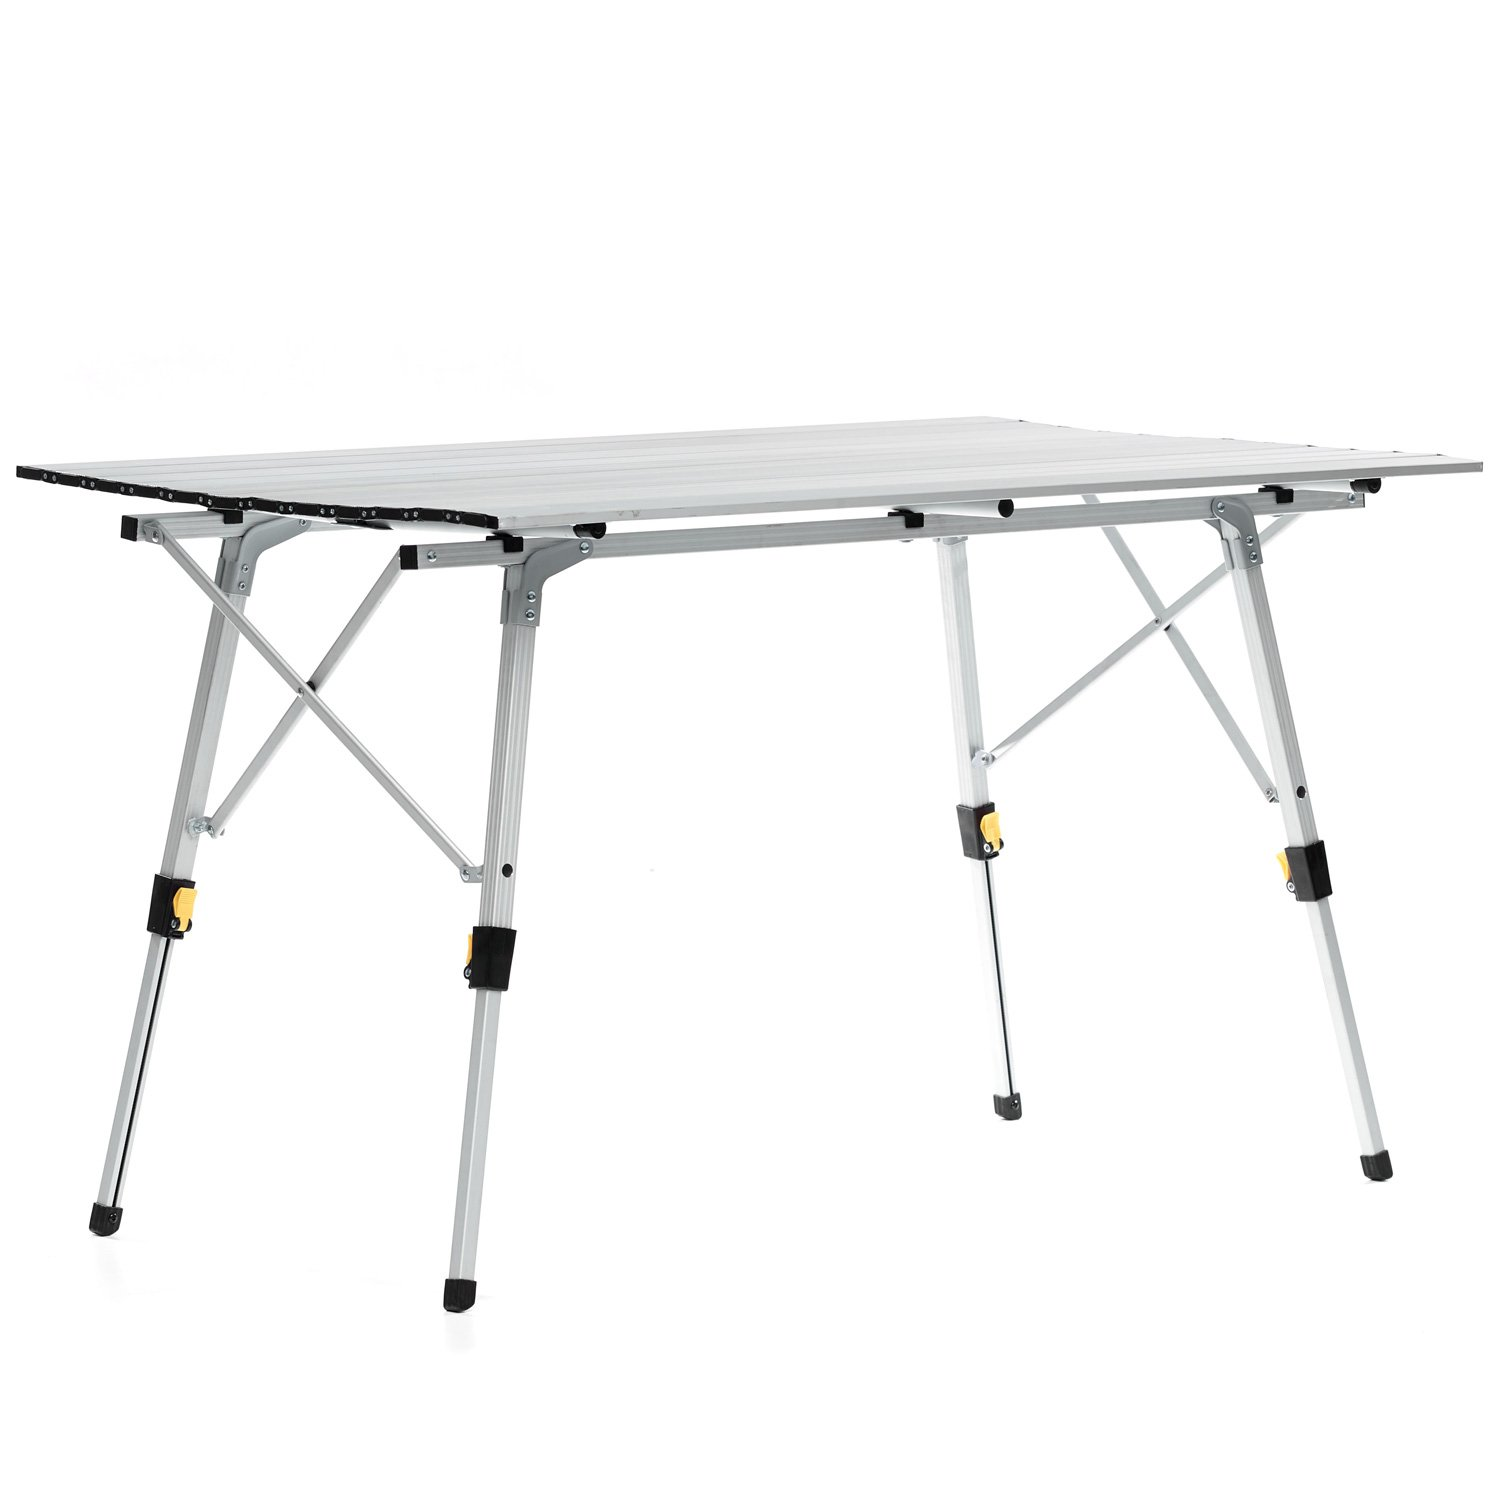 skandika table de camping pliable pliante en aluminium. Black Bedroom Furniture Sets. Home Design Ideas